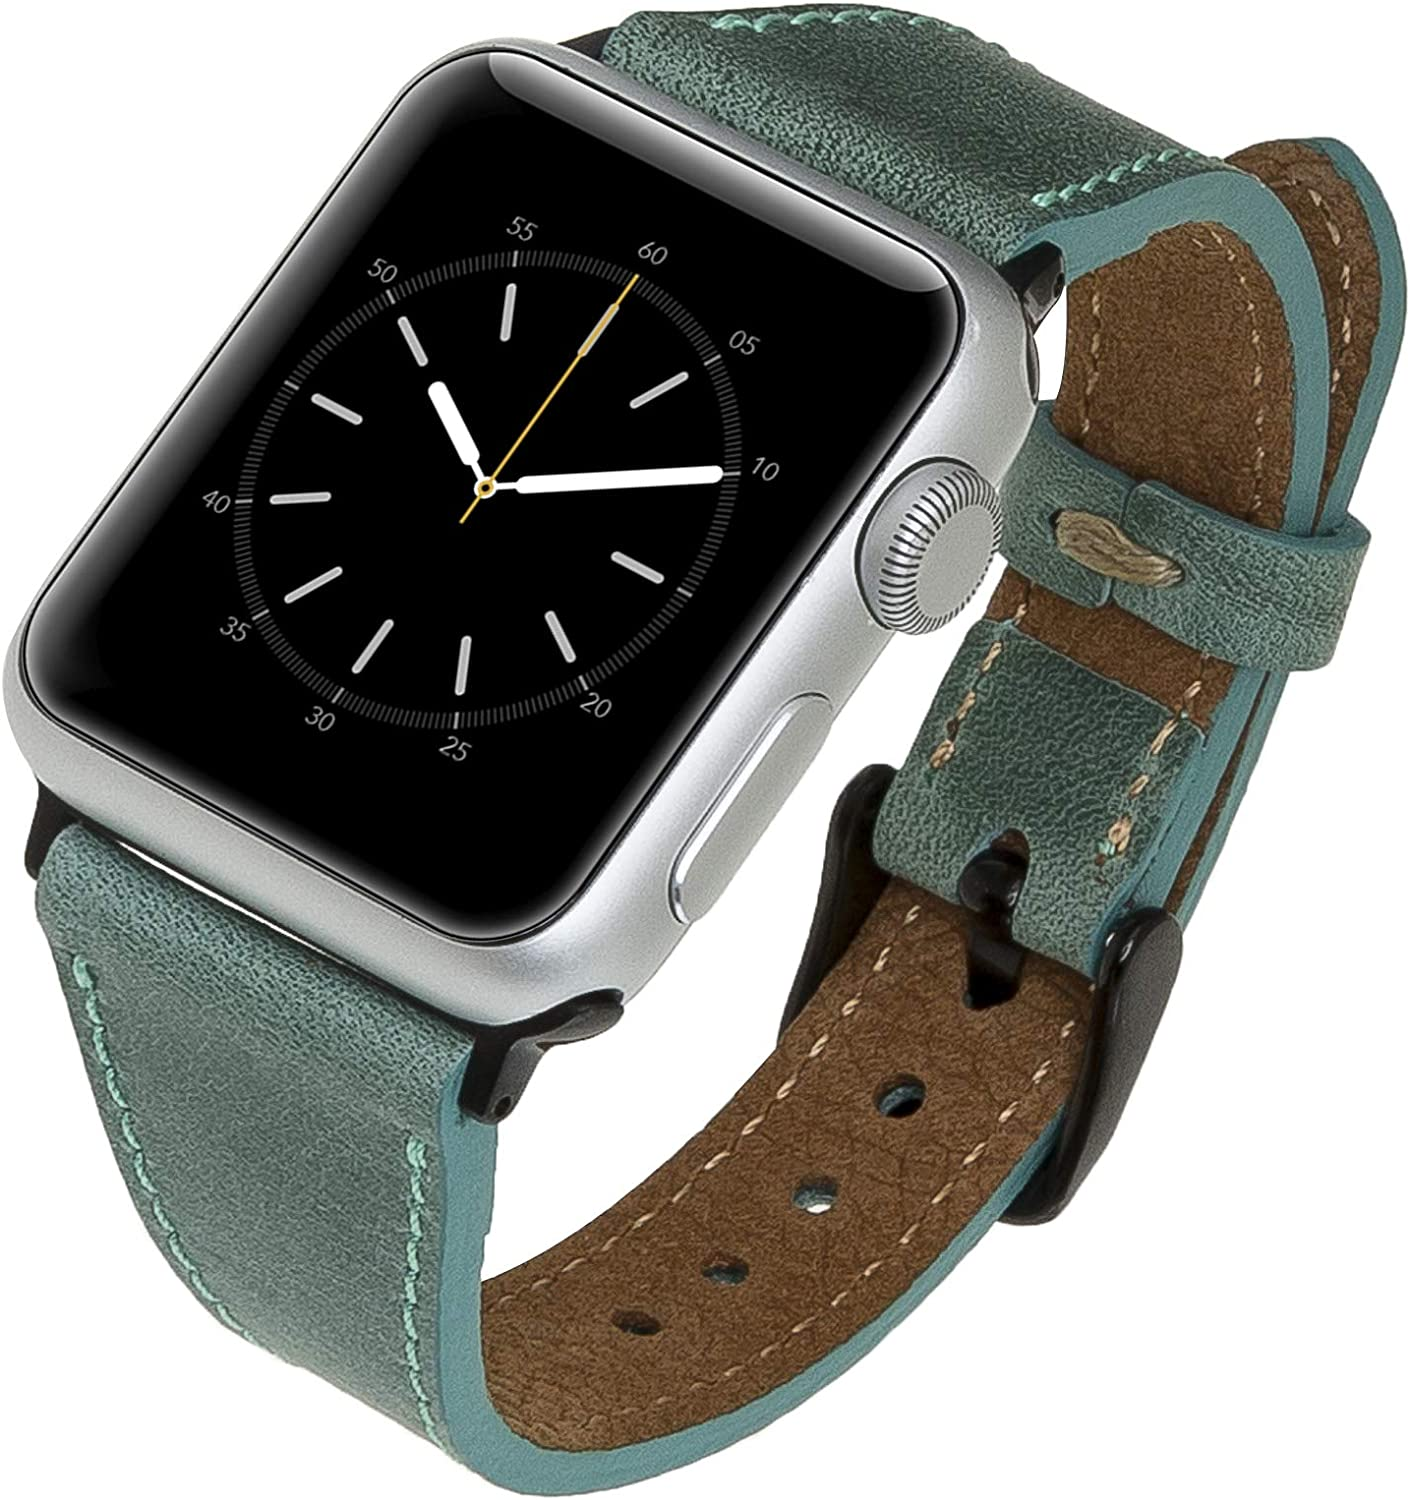 Venito Messina Leather Slim Watch Band Compatible with Apple Watch 38mm 40mm - Strap Designed for iwatch Series 1 2 3 4 5 6 (Aqua Green w/Black Connector&Clasp)